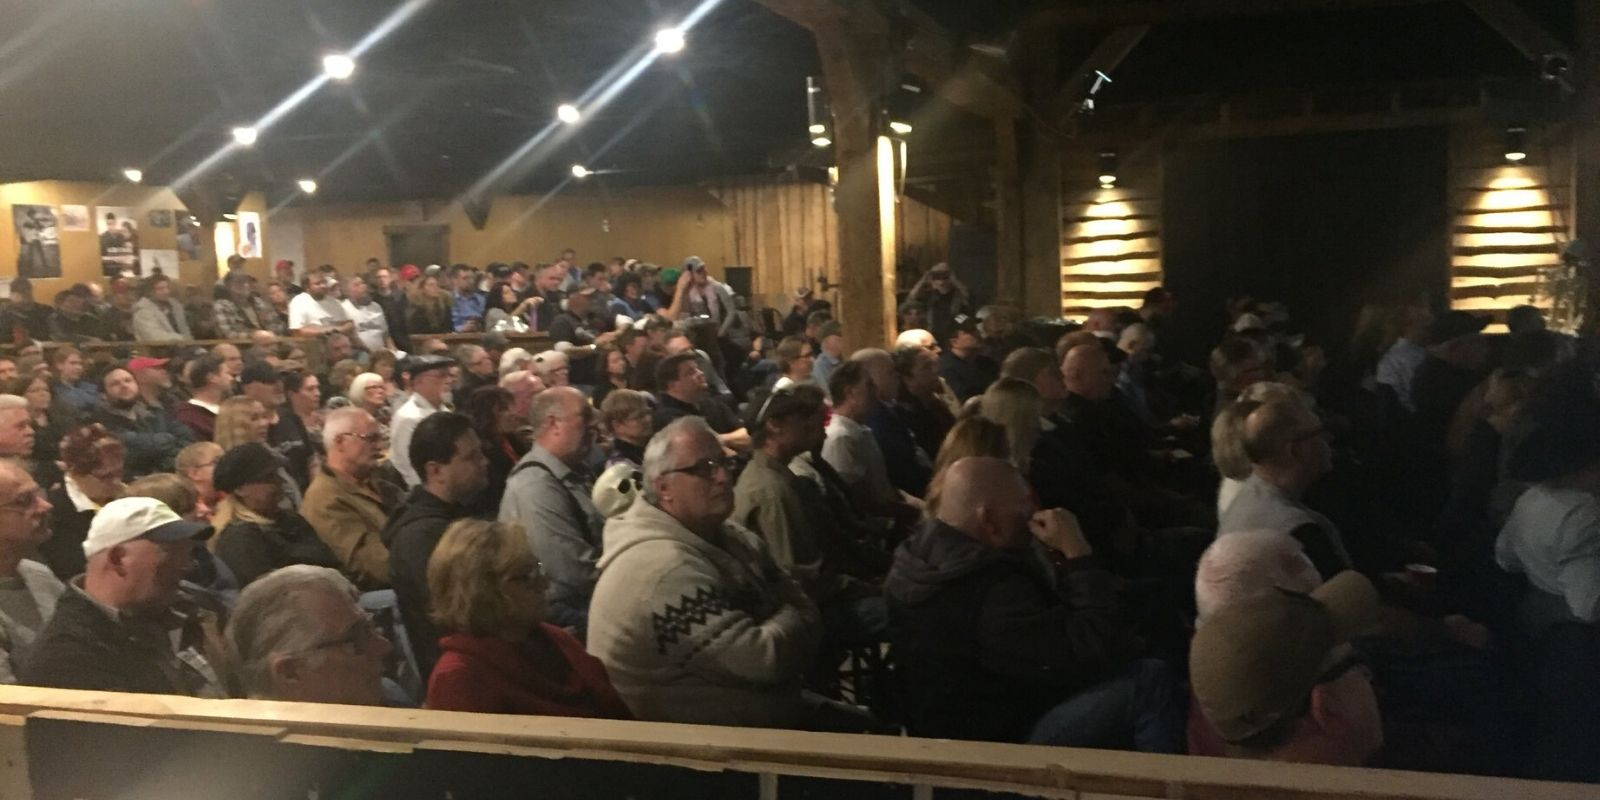 Wexit booms! Hundreds rally at Edmonton separatism event